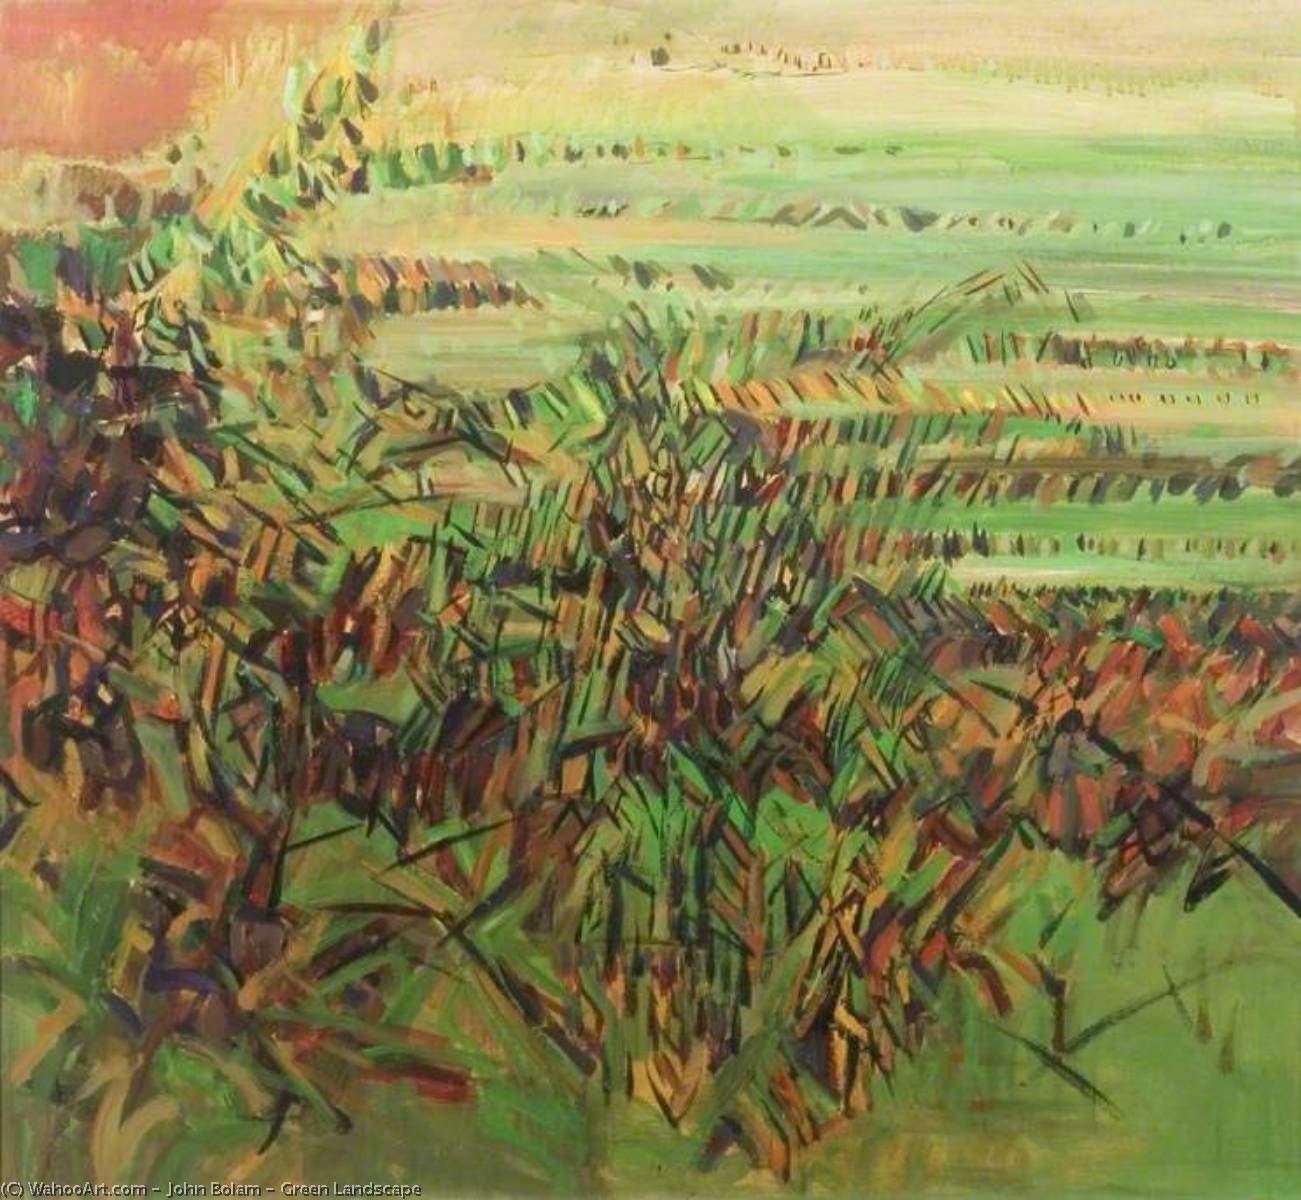 Wikioo.org - The Encyclopedia of Fine Arts - Painting, Artwork by John Bolam - Green Landscape